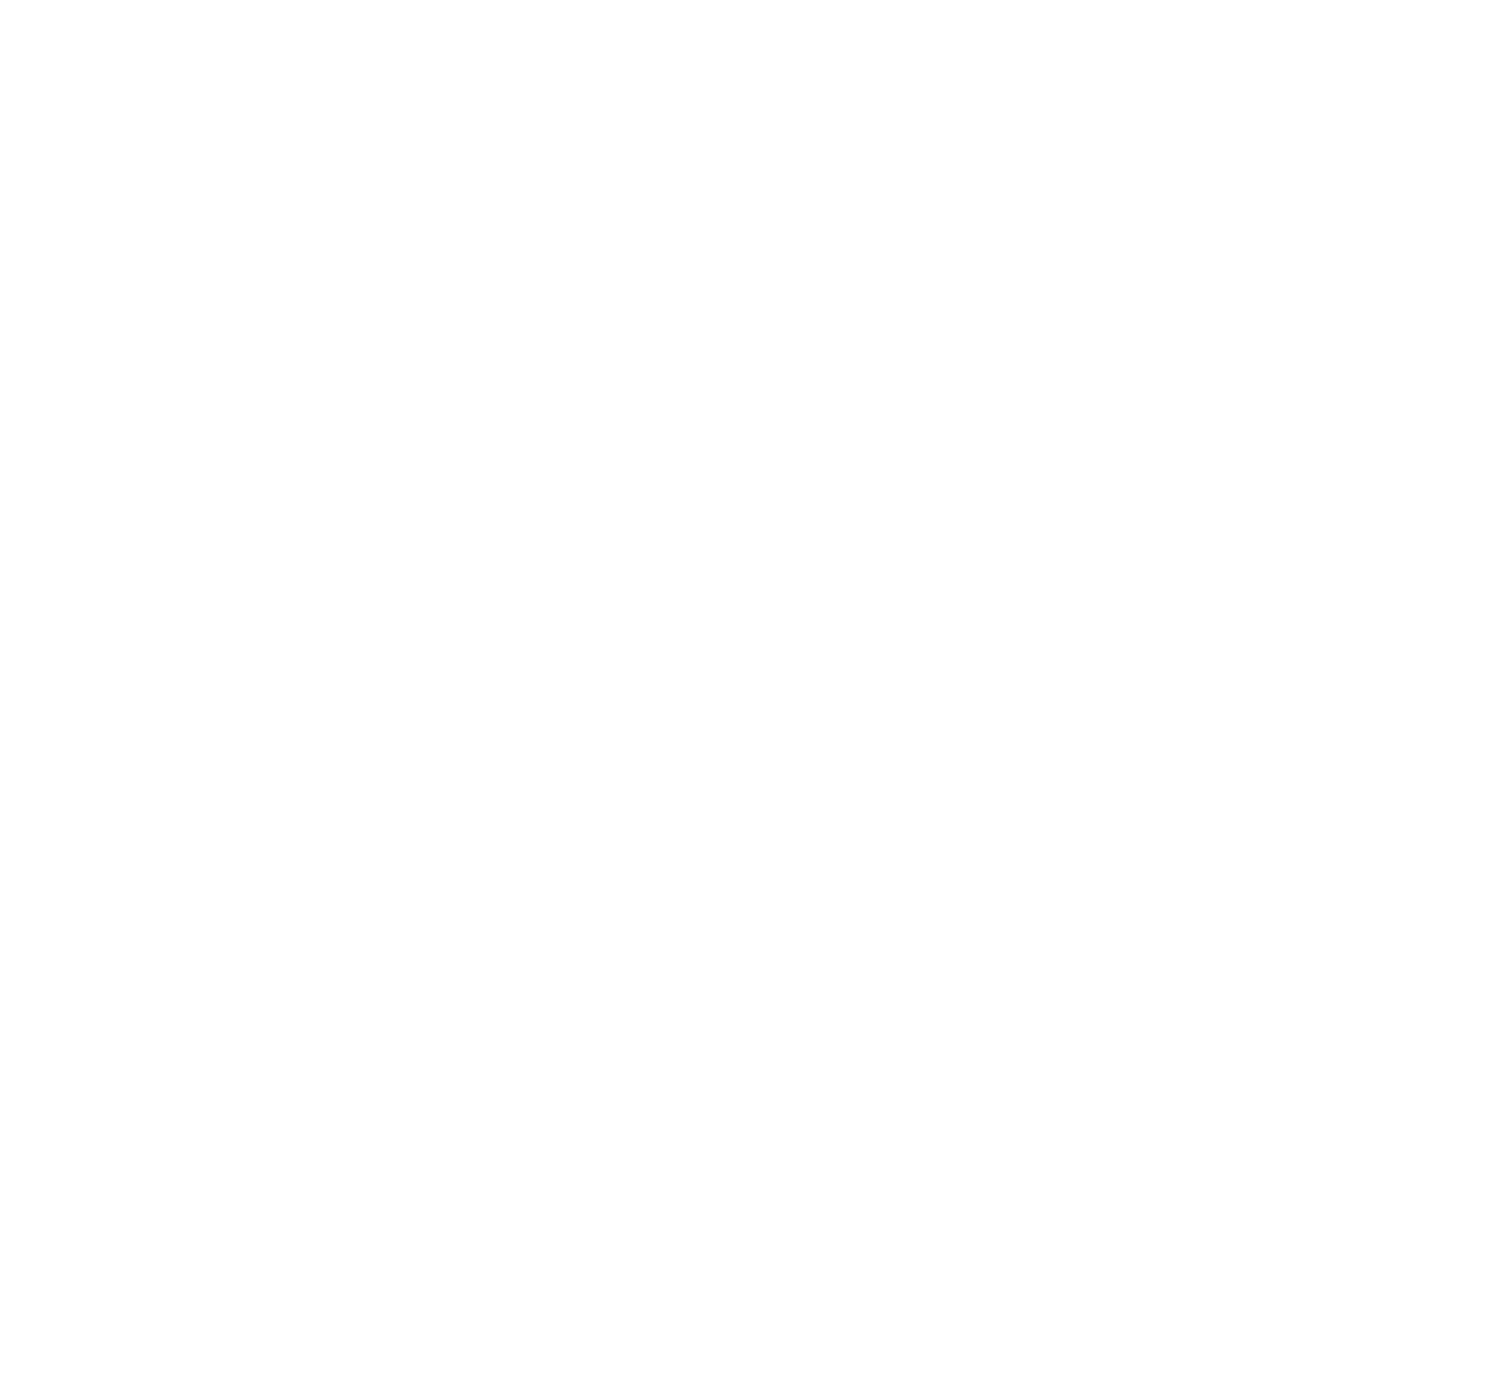 Blessing Thai Restaurant